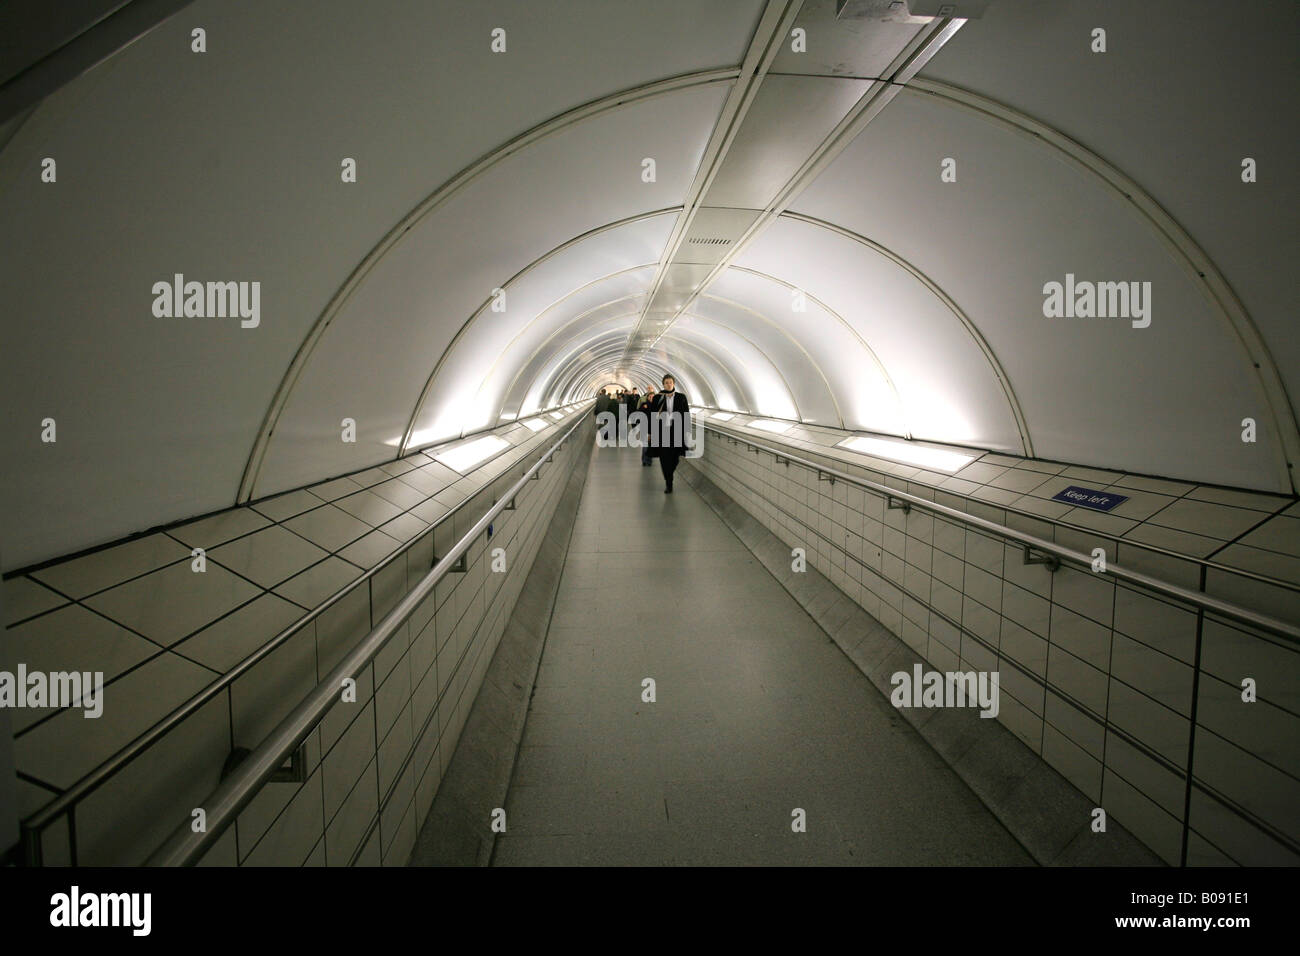 Connecting tunnel inside Waterloo tube station to the Waterloo and City Line, London, England, UK - Stock Image